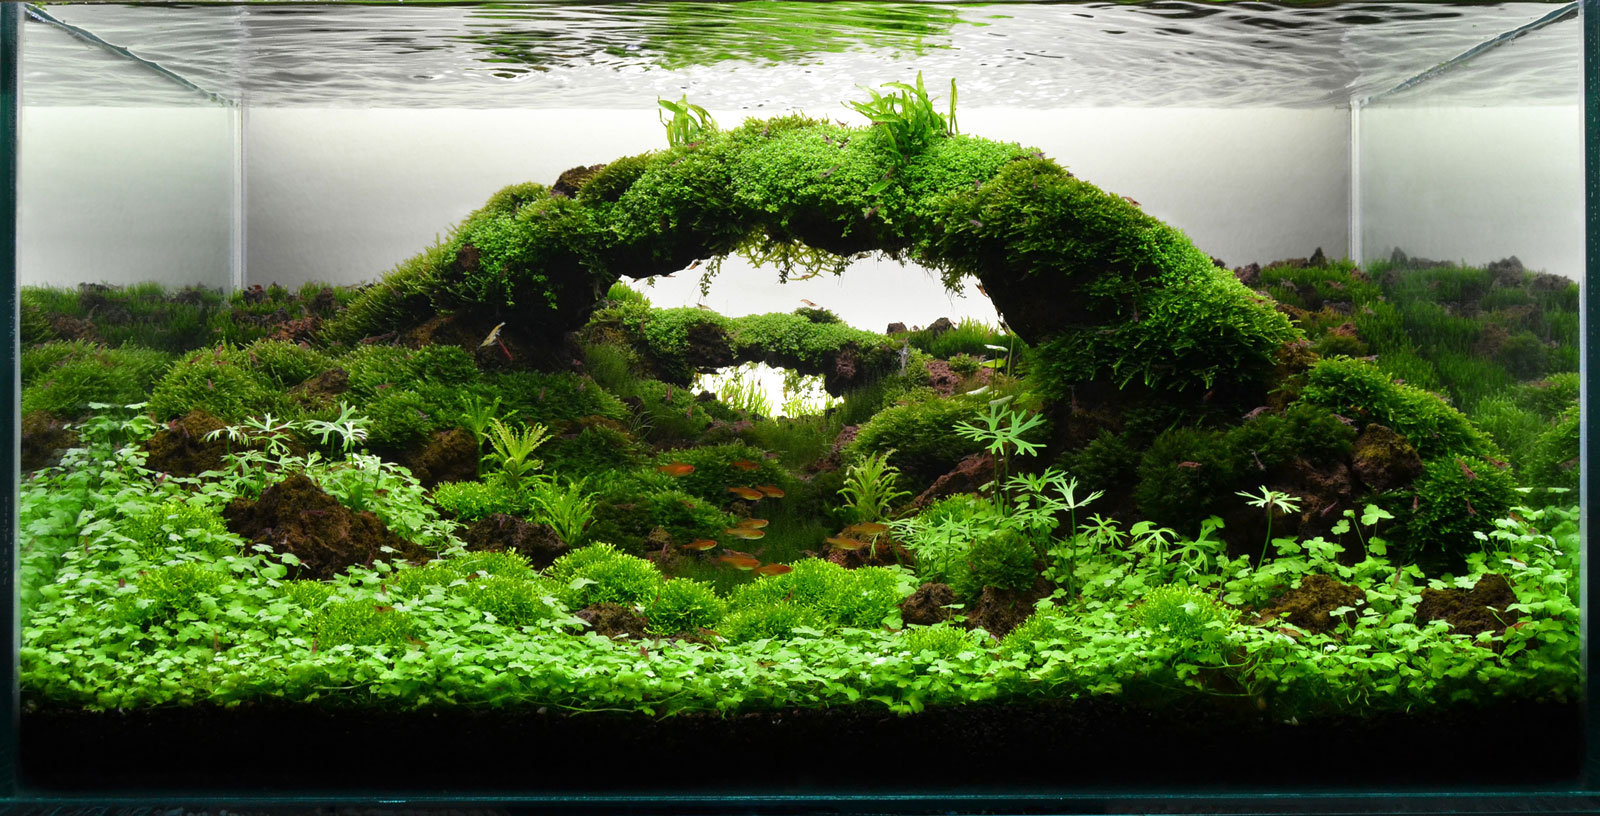 Aquascape gallery my life my story - Gallery aquascape ...